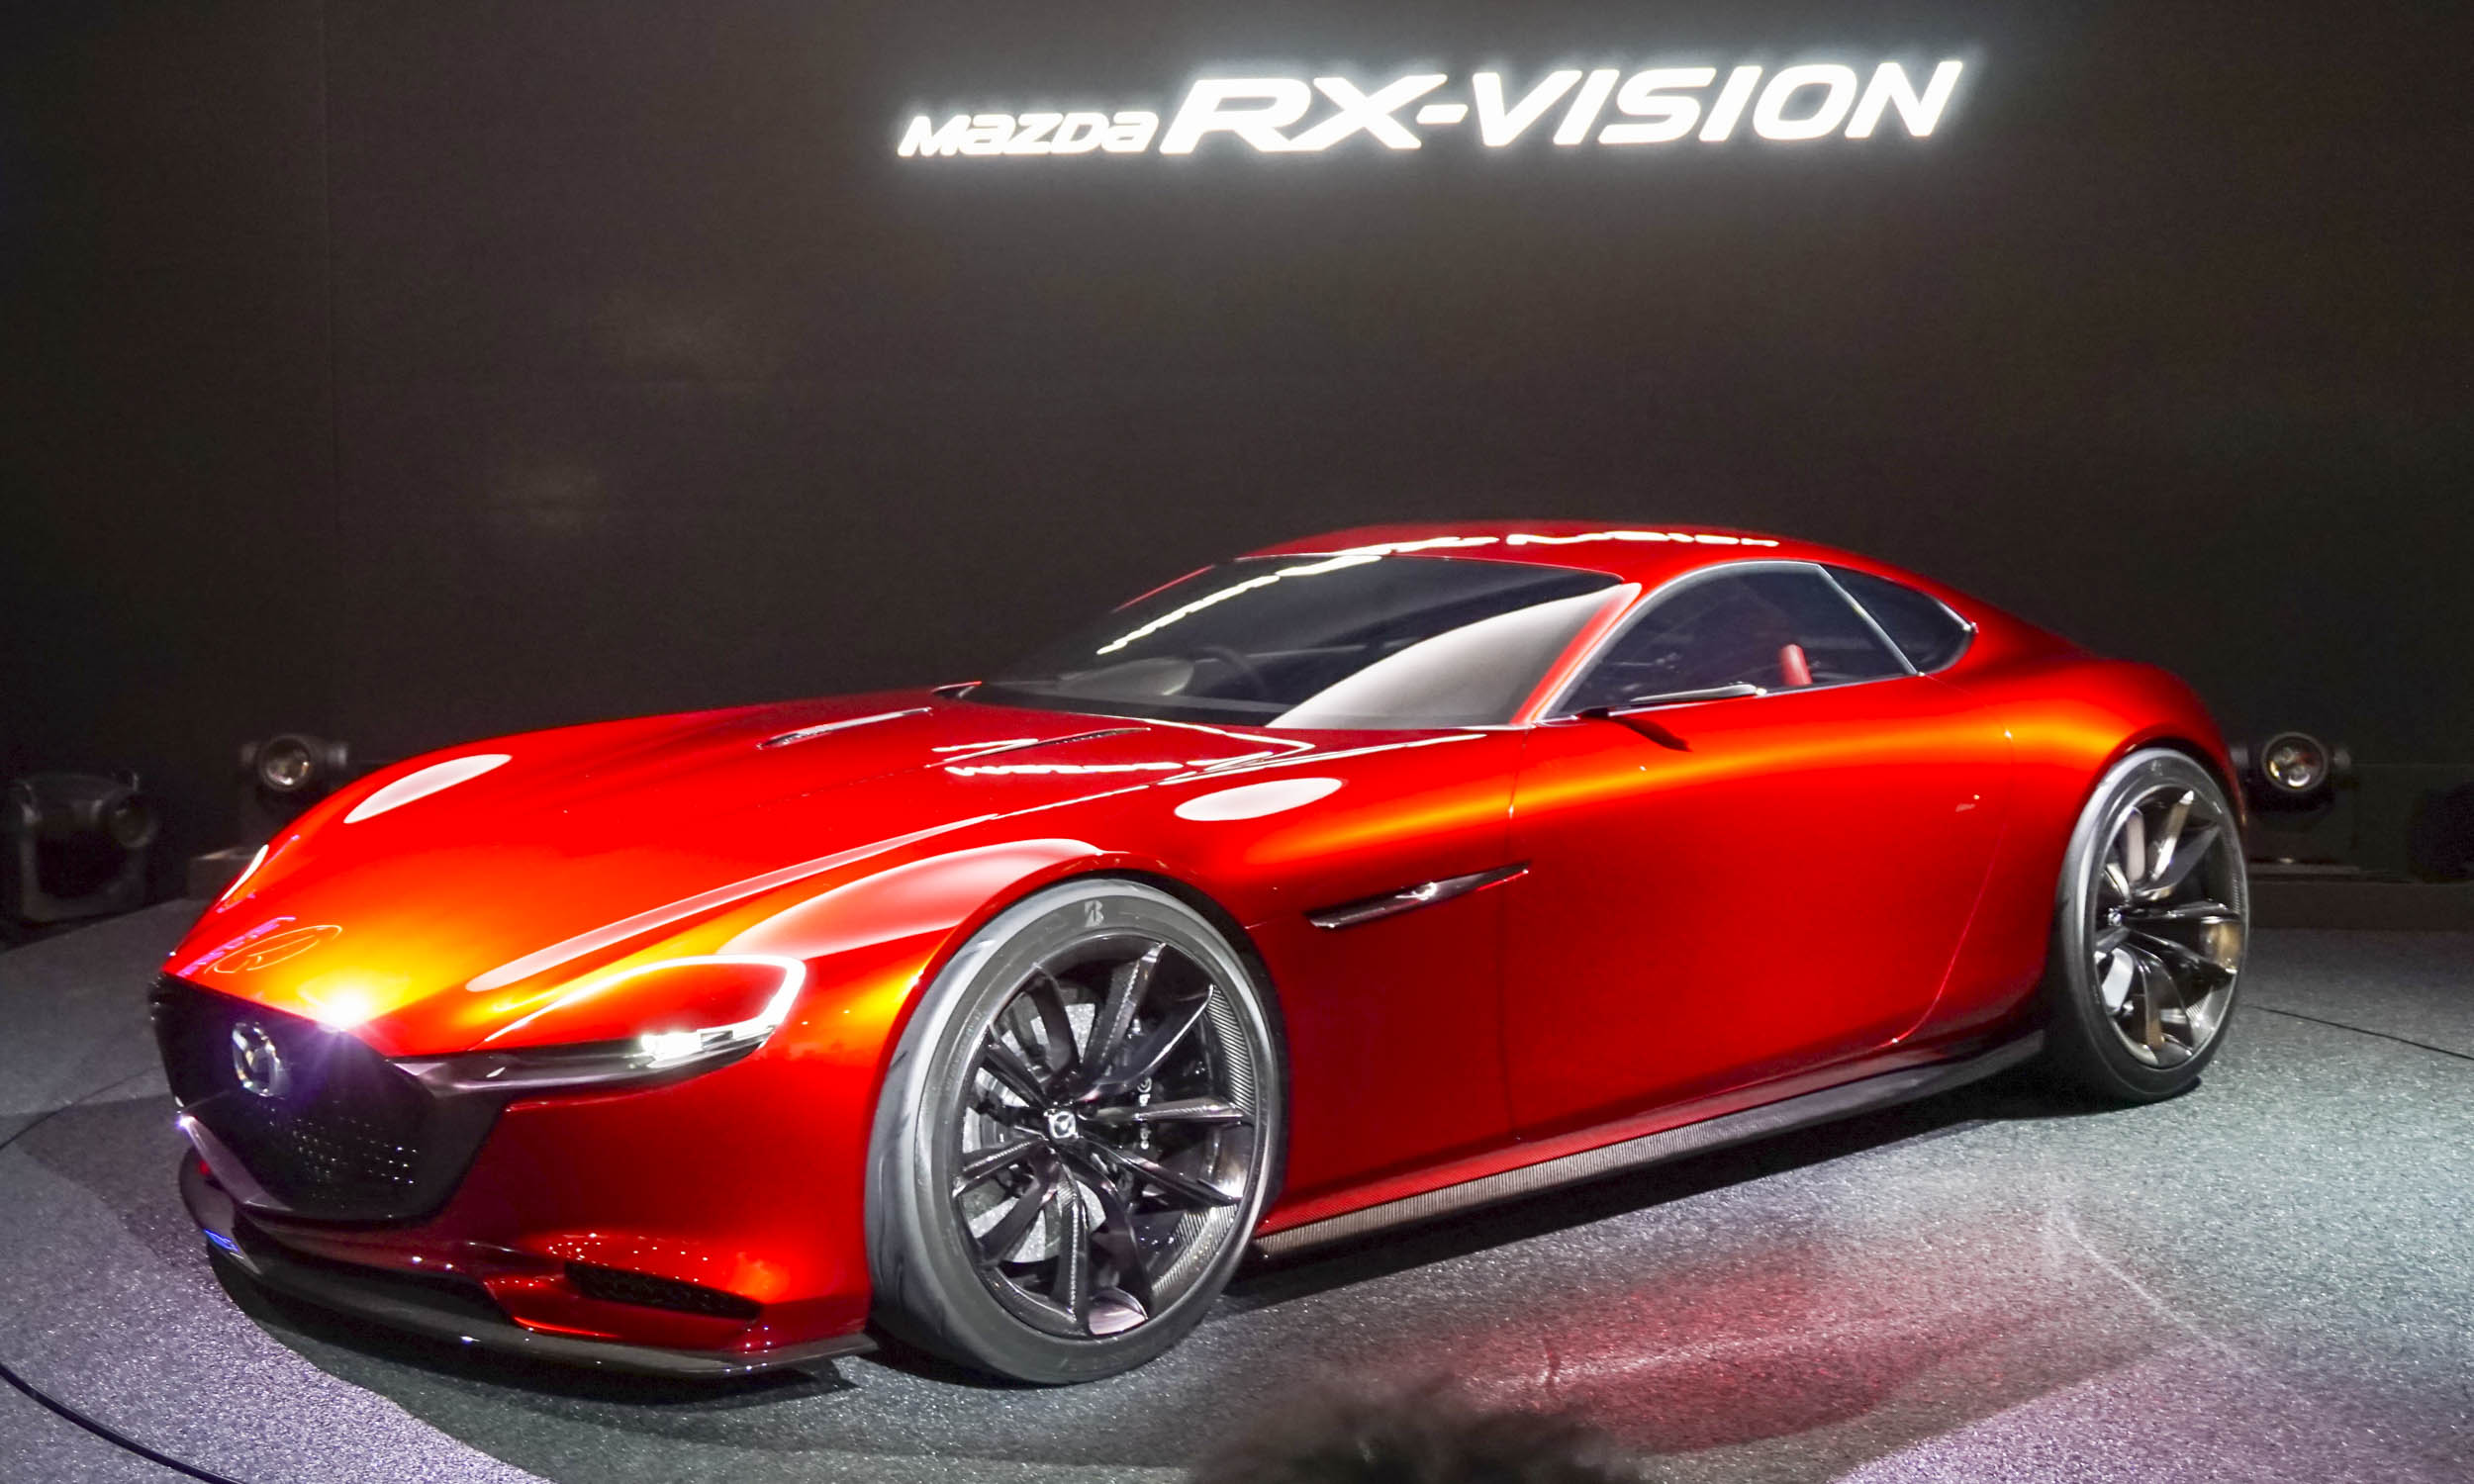 2015 Tokyo Motor Show: Best Concept Cars